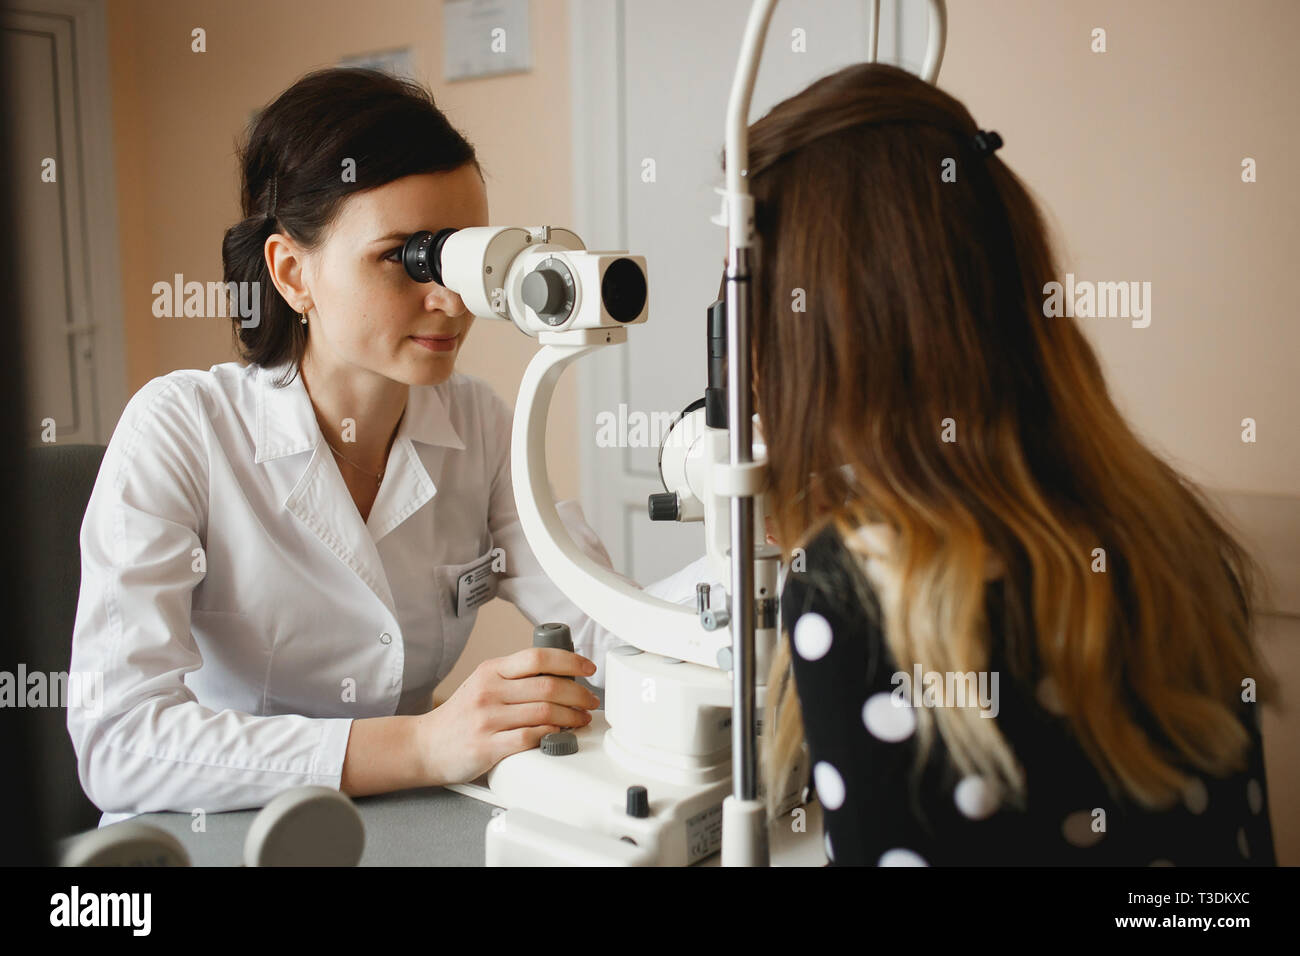 Attractive female doctor ophthalmologist is checking the eye vision of young woman in modern clinic. Doctor and patient in ophthalmology clinic. - Stock Image